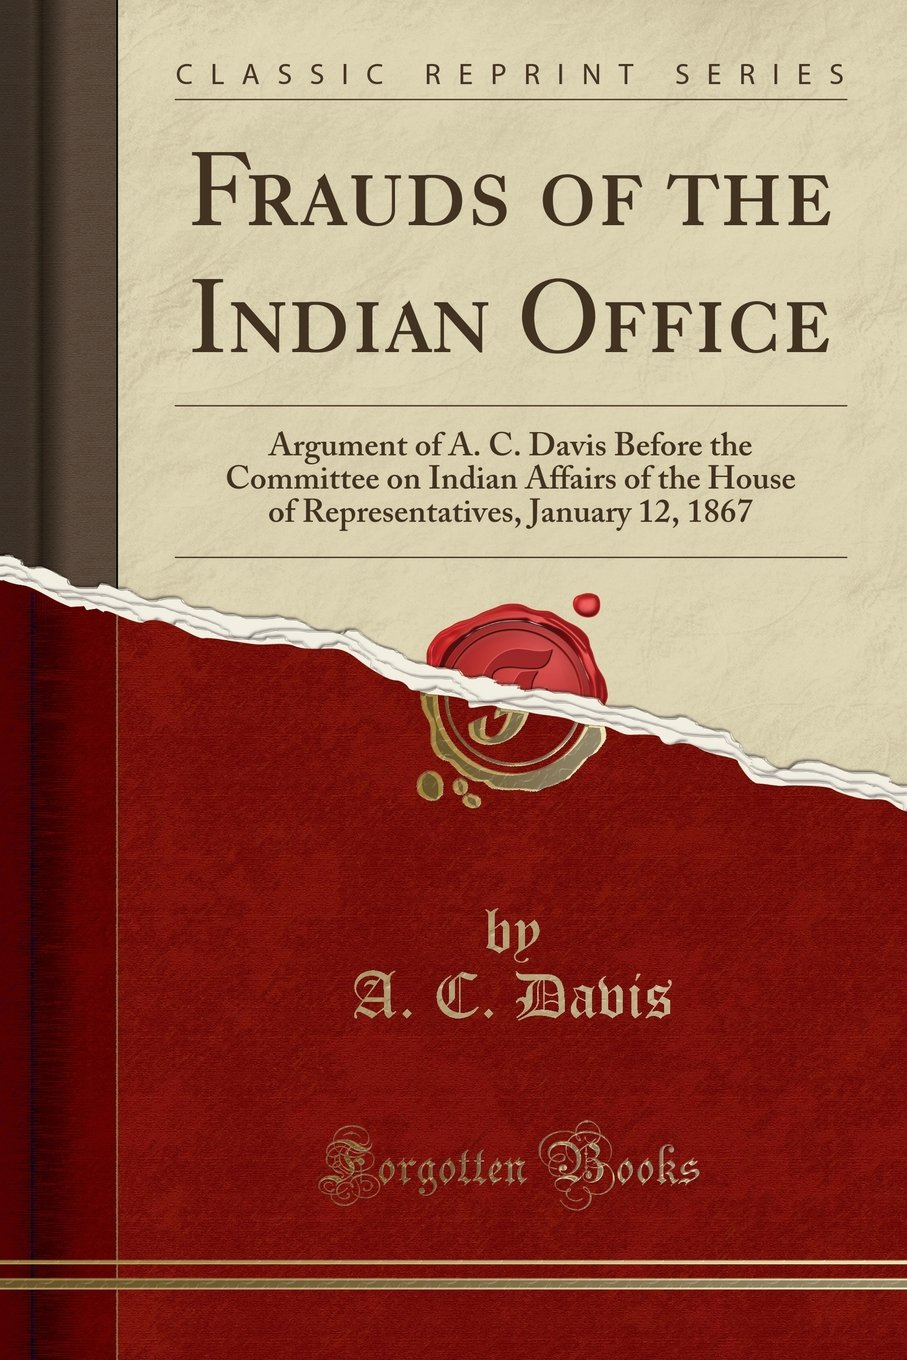 Download Frauds of the Indian Office: Argument of A. C. Davis Before the Committee on Indian Affairs of the House of Representatives, January 12, 1867 (Classic Reprint) pdf